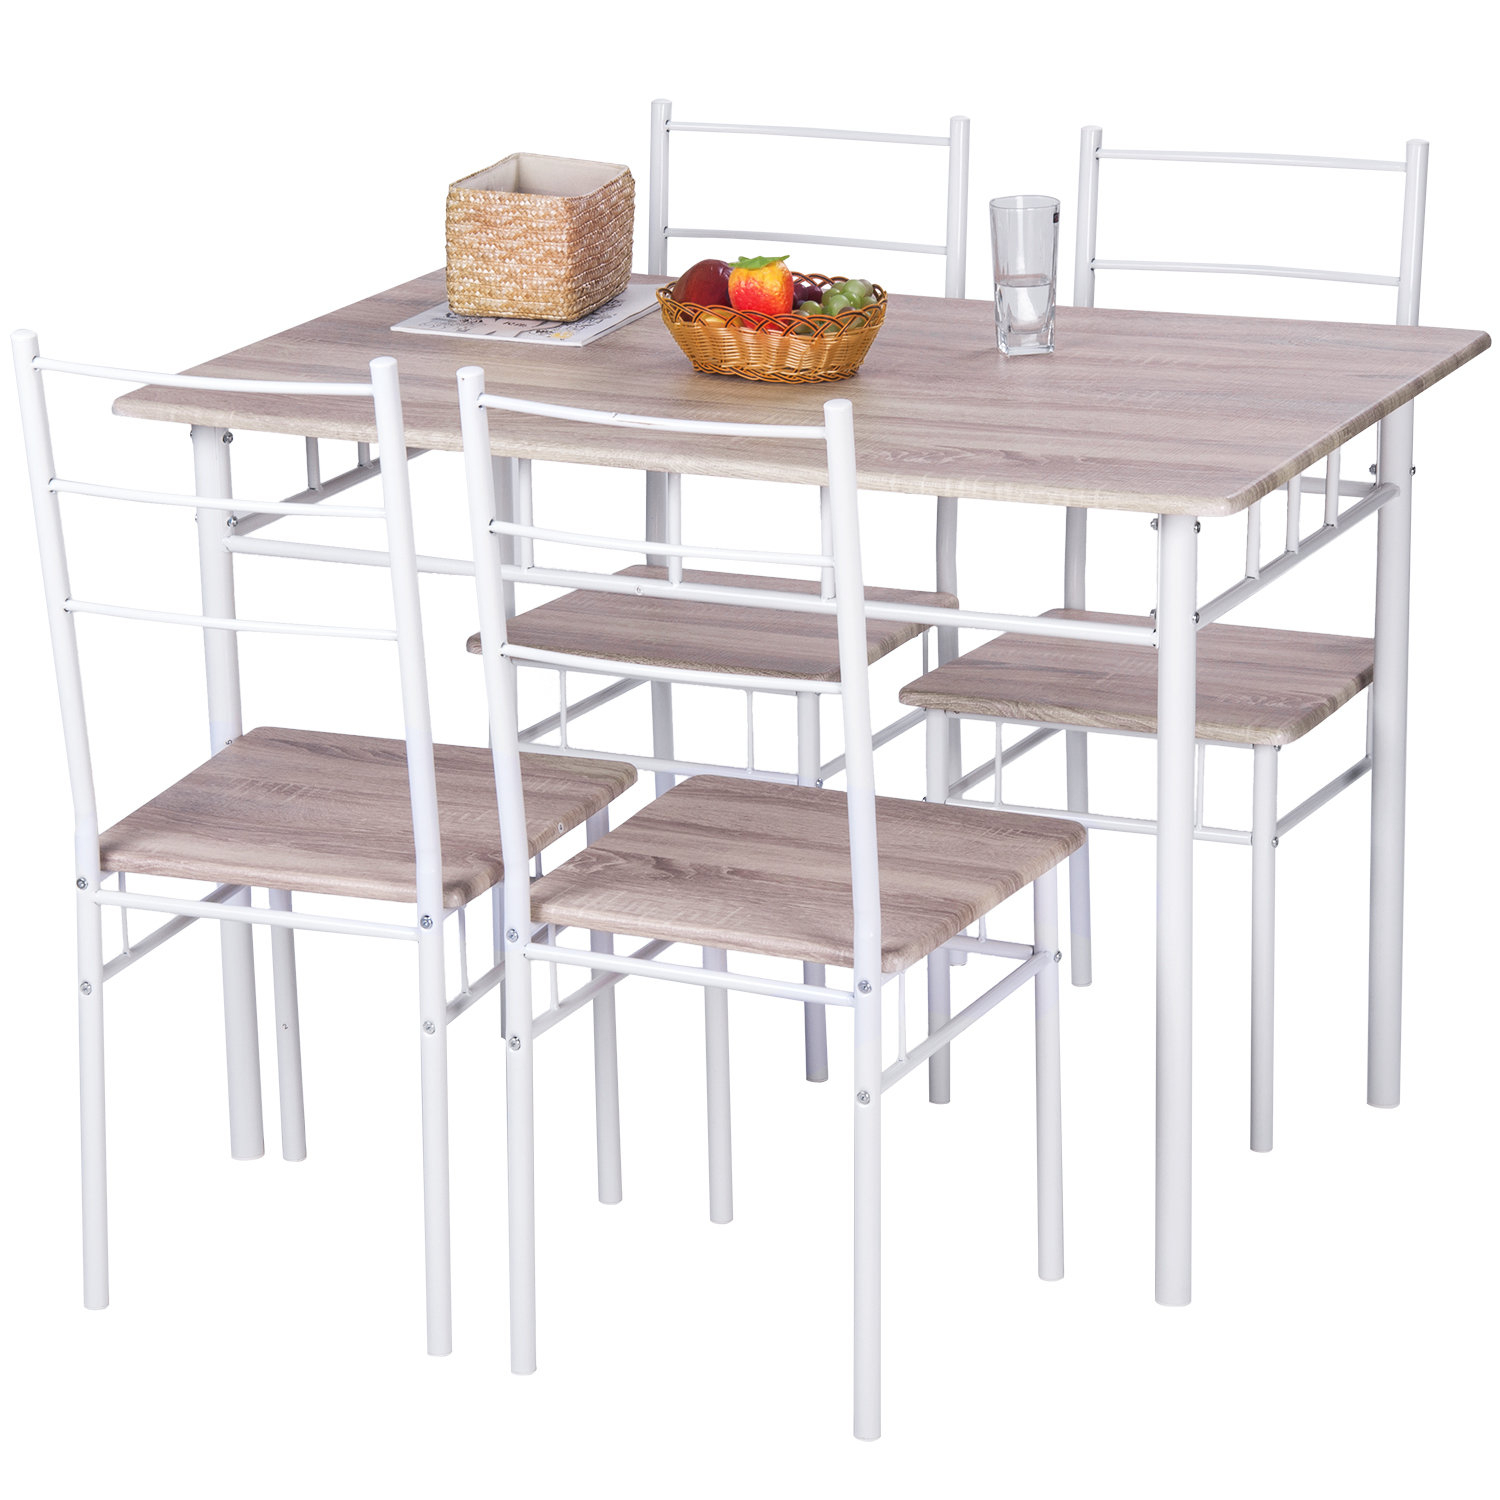 5 Piece Breakfast Nook Dining Set With Regard To Most Popular Castellanos Modern 5 Piece Counter Height Dining Sets (Image 1 of 20)